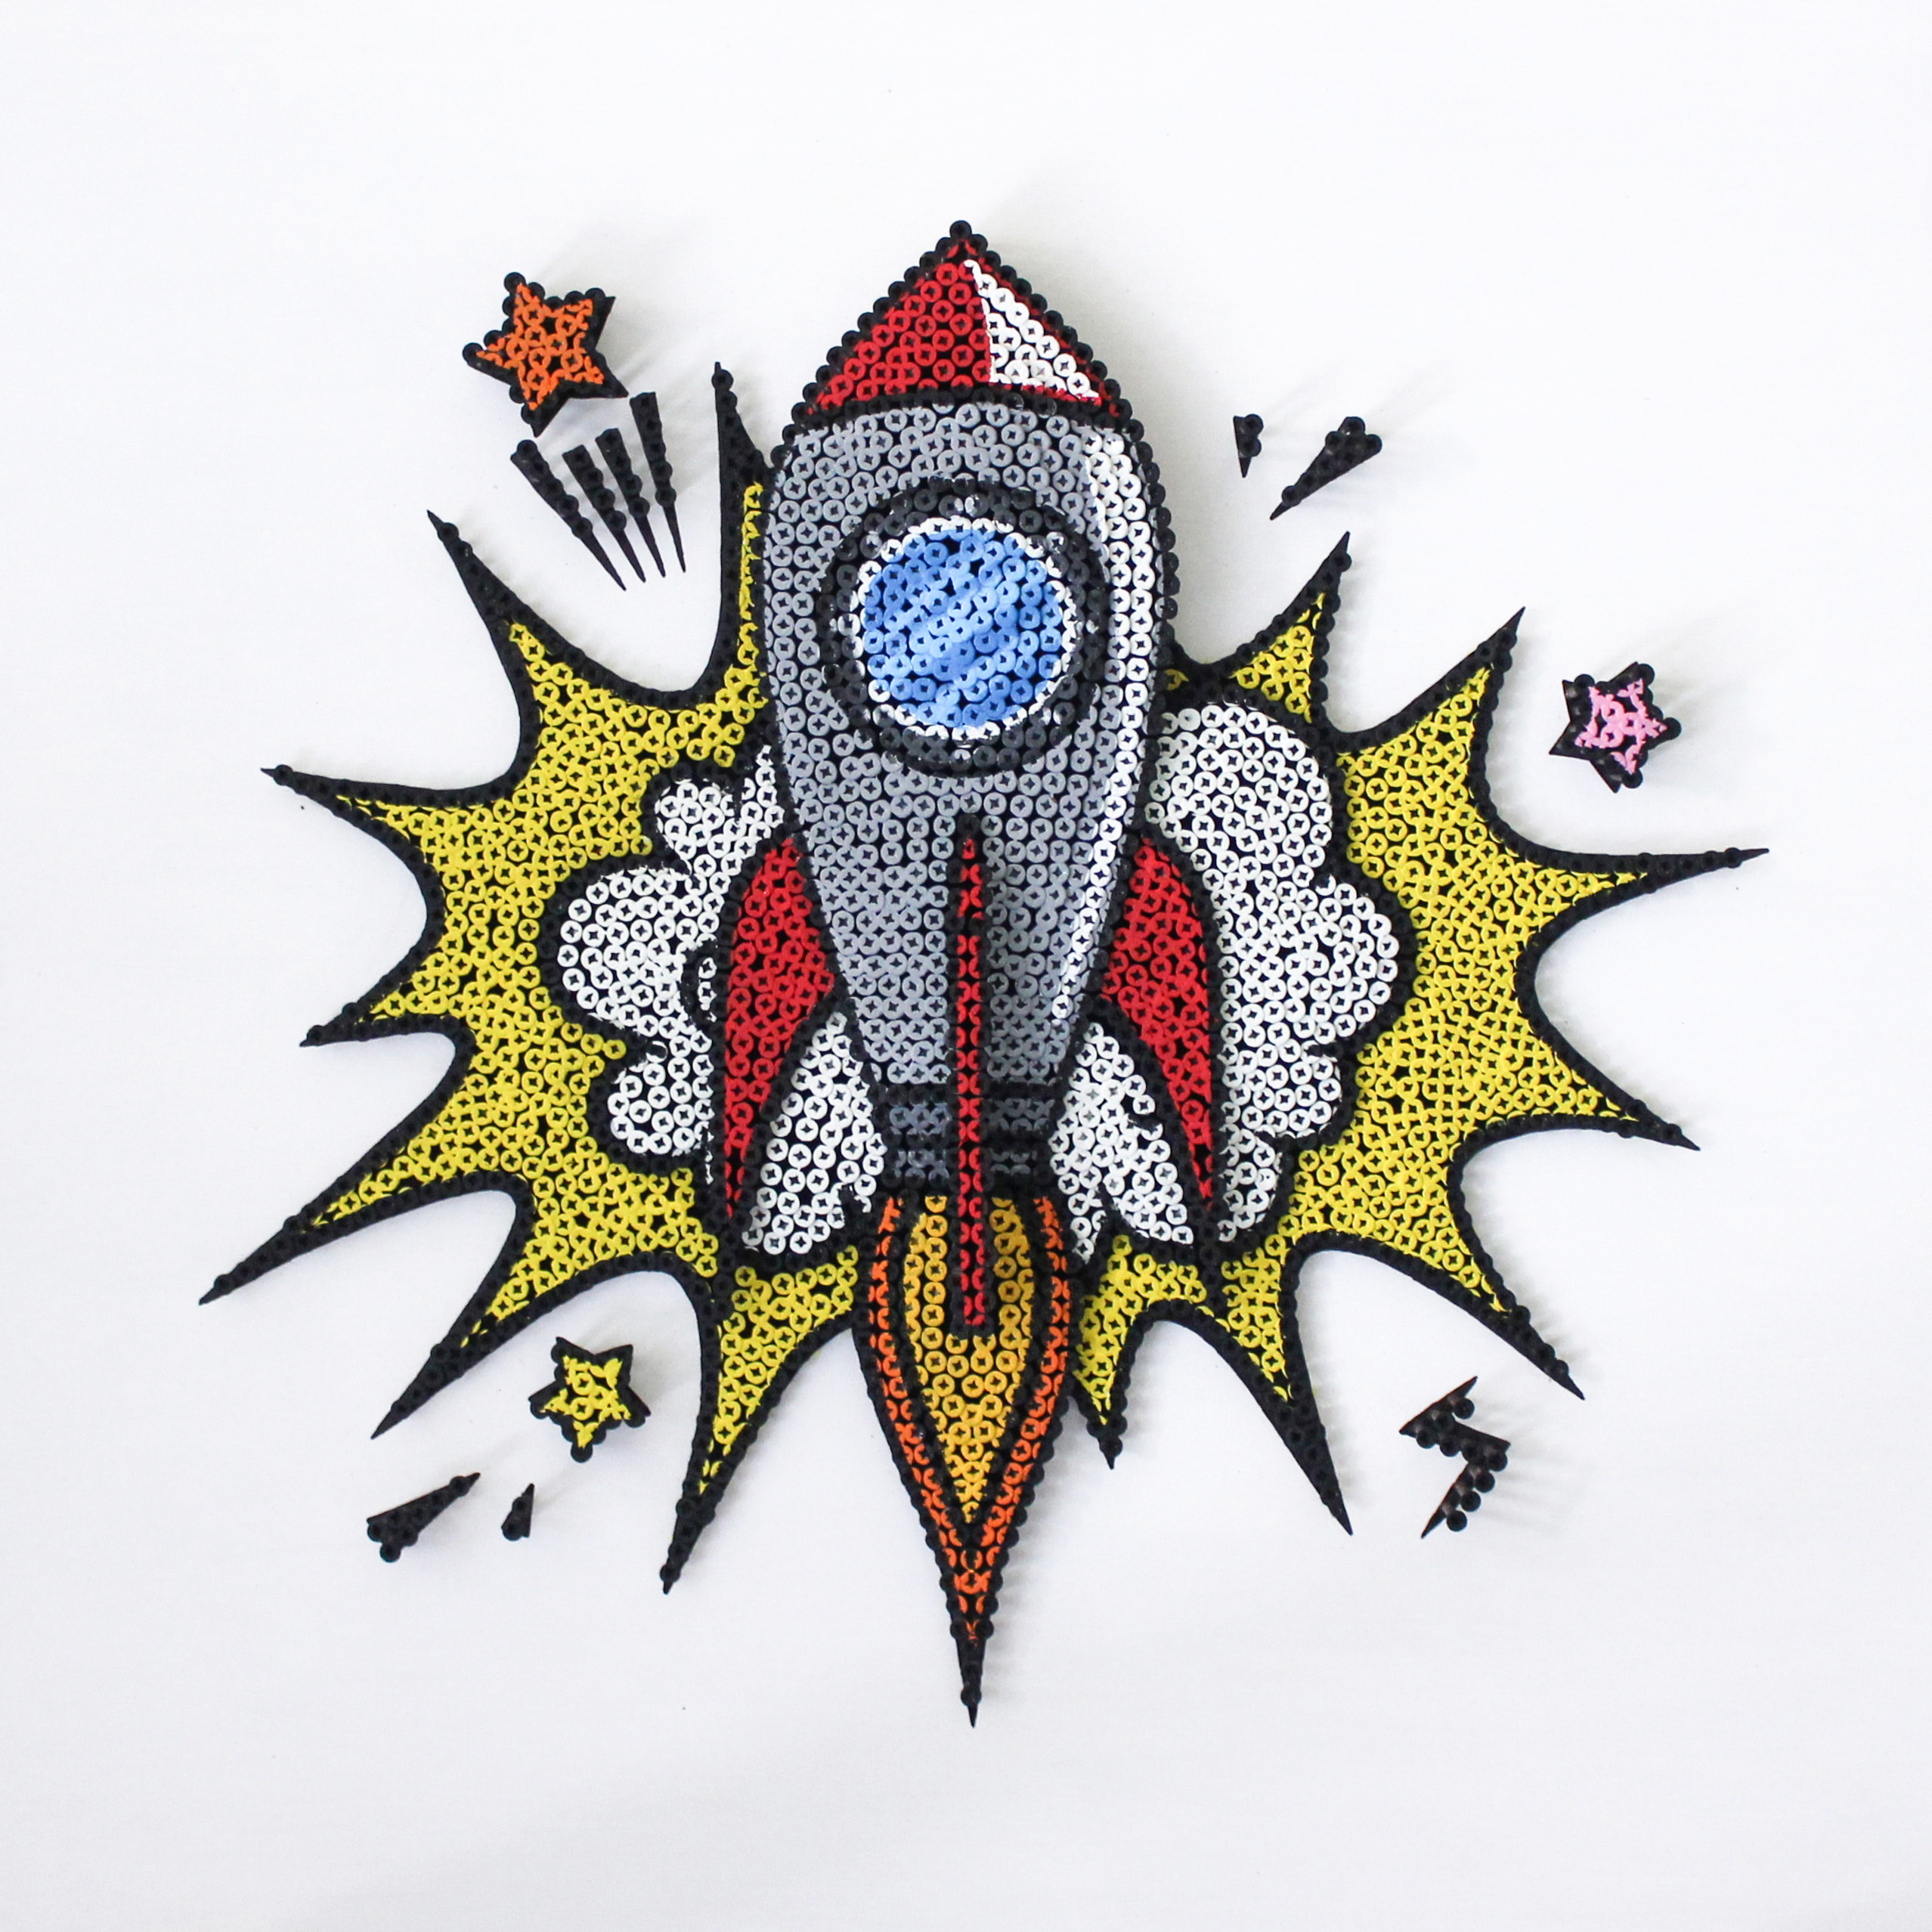 Alessandro Padovan - Screw art - Rocket